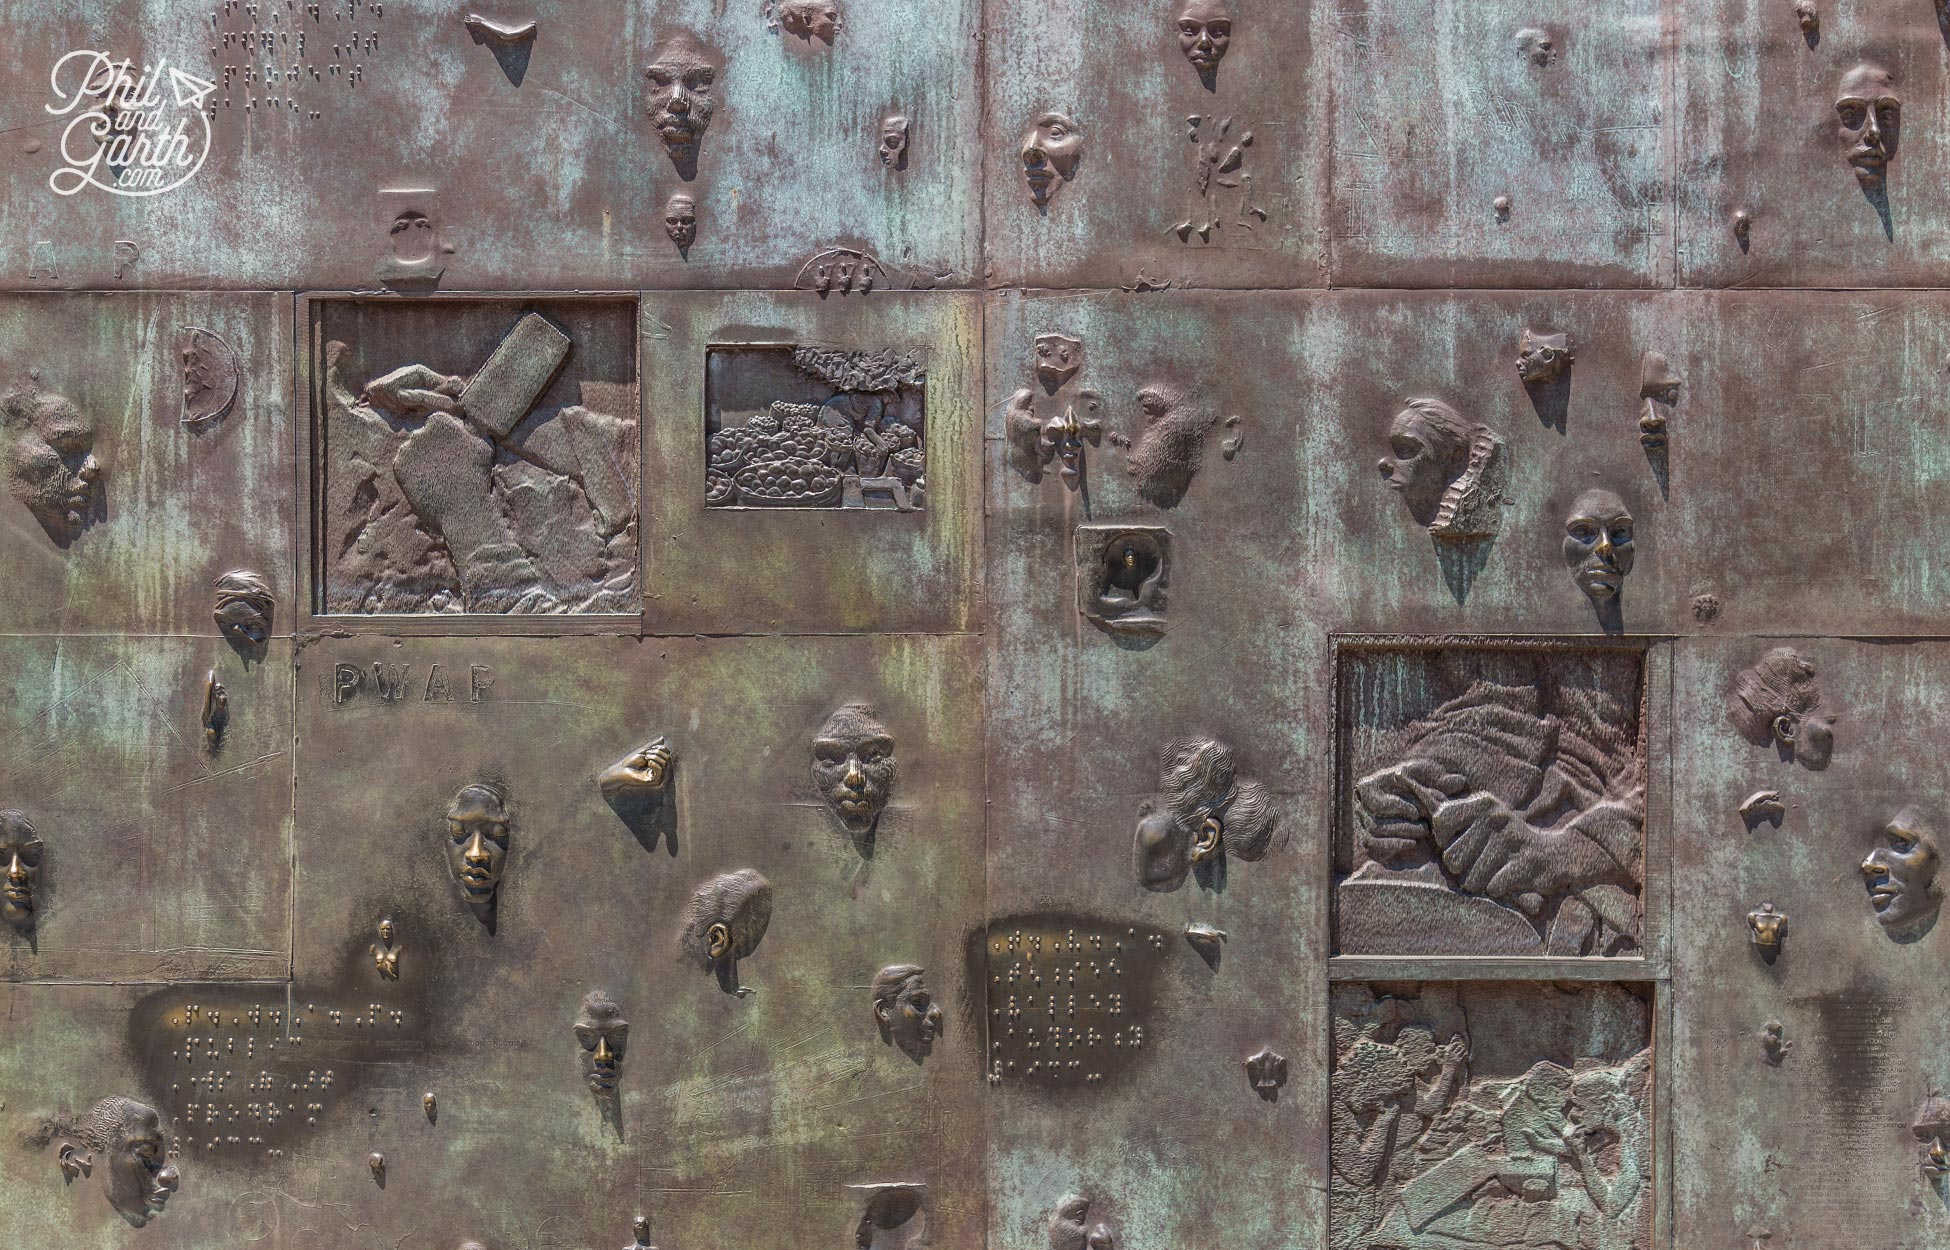 This memorial is really tactile - an area with reliefs and braille